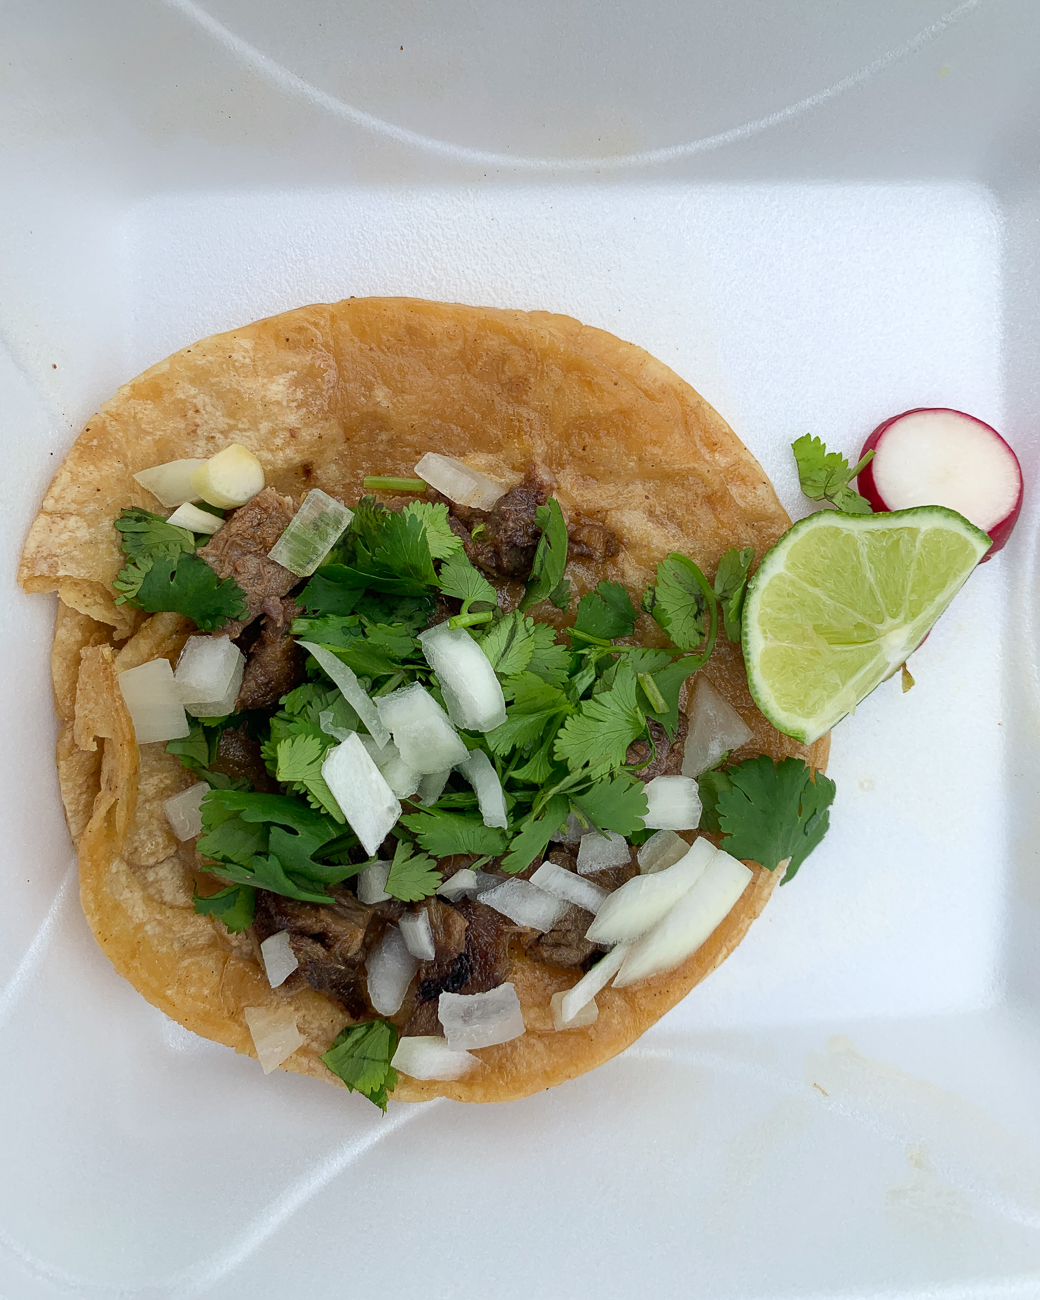 PLACE: Taqueria Yolandita / ADDRESS: 1881 Westwood Ave (Fairmount) / DESCRIPTION: You're going to want to hit Taqueria Yolandita on a nice day, as it's a small food truck and you'll be eating outside. They have a larger selection of options than I expected. I went with both the lengua (beef tongue) and the chicken tacos, and I was not disappointed. They had options for sour cream, lettuce, and tomato, but because I had been having so many delicious tacos with the simple cilantro and onion combo, I continued that trend (and continued to be sold on it). This spot is a little off the beaten path, but it's well worth the trek. / Image: Shawn Braley // Published: 5.28.19